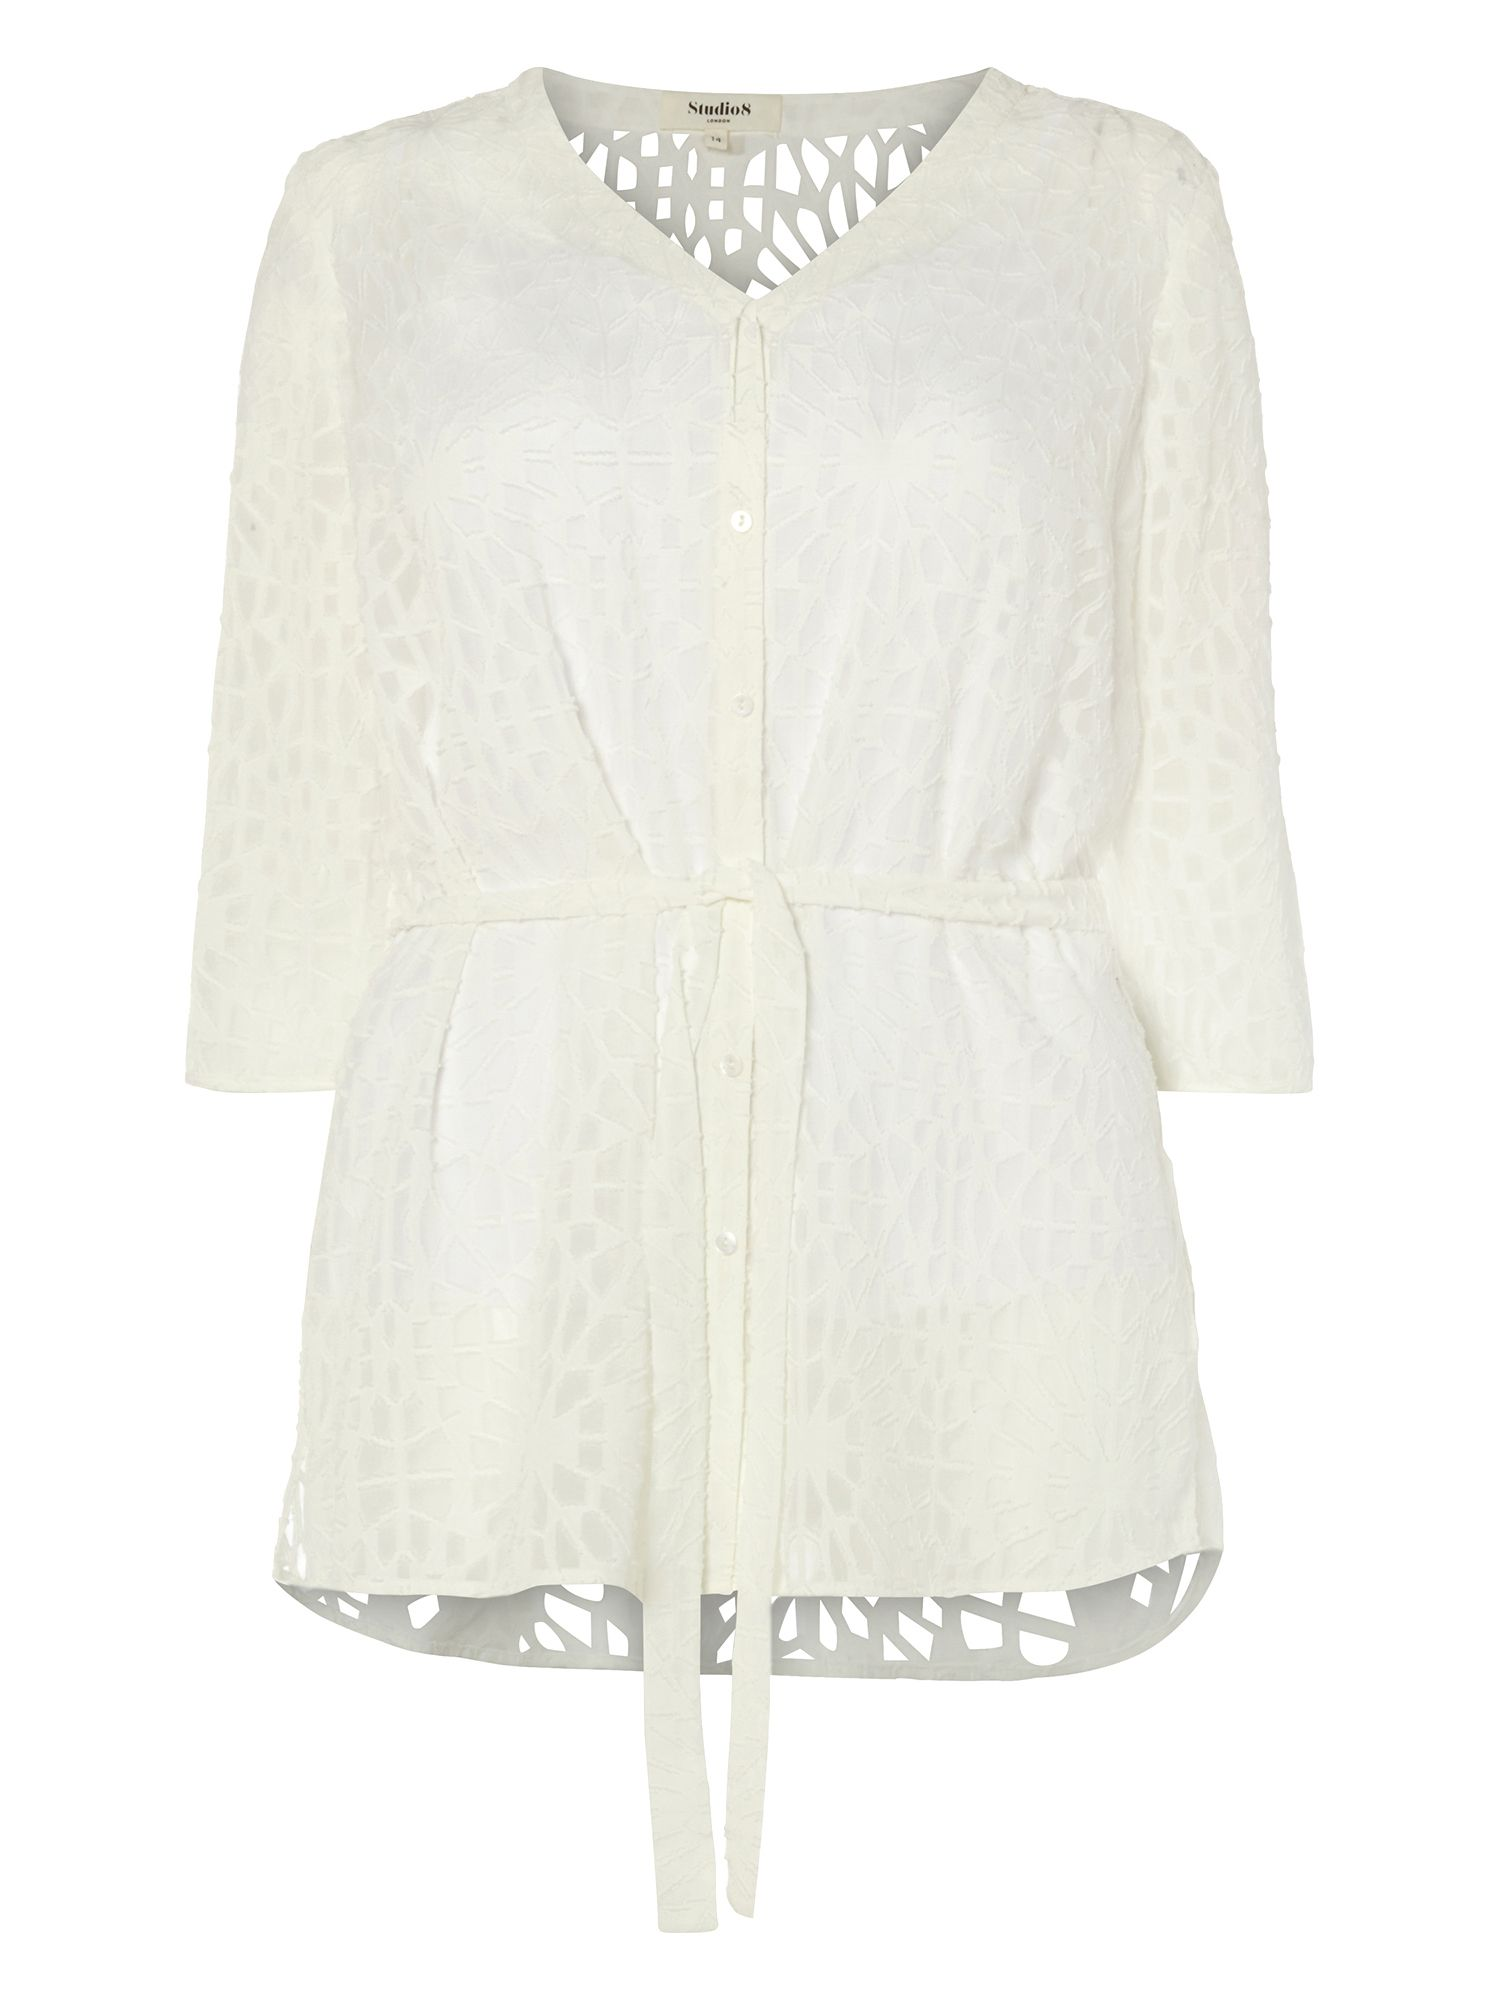 Studio 8 Holly Blouse, White